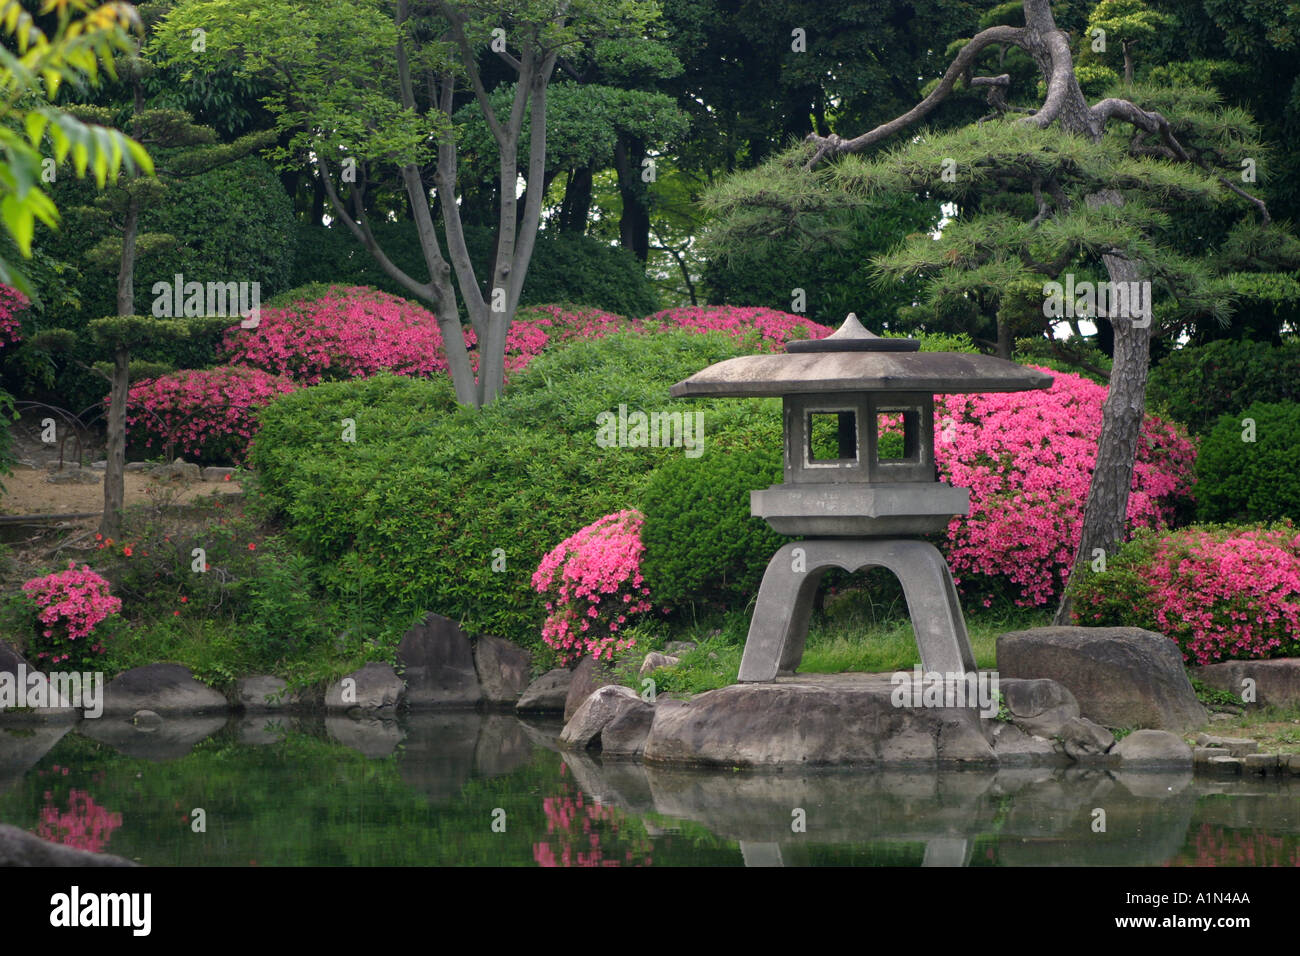 Typical stone lantern with bright pink plants in a for Typical landscaping plants